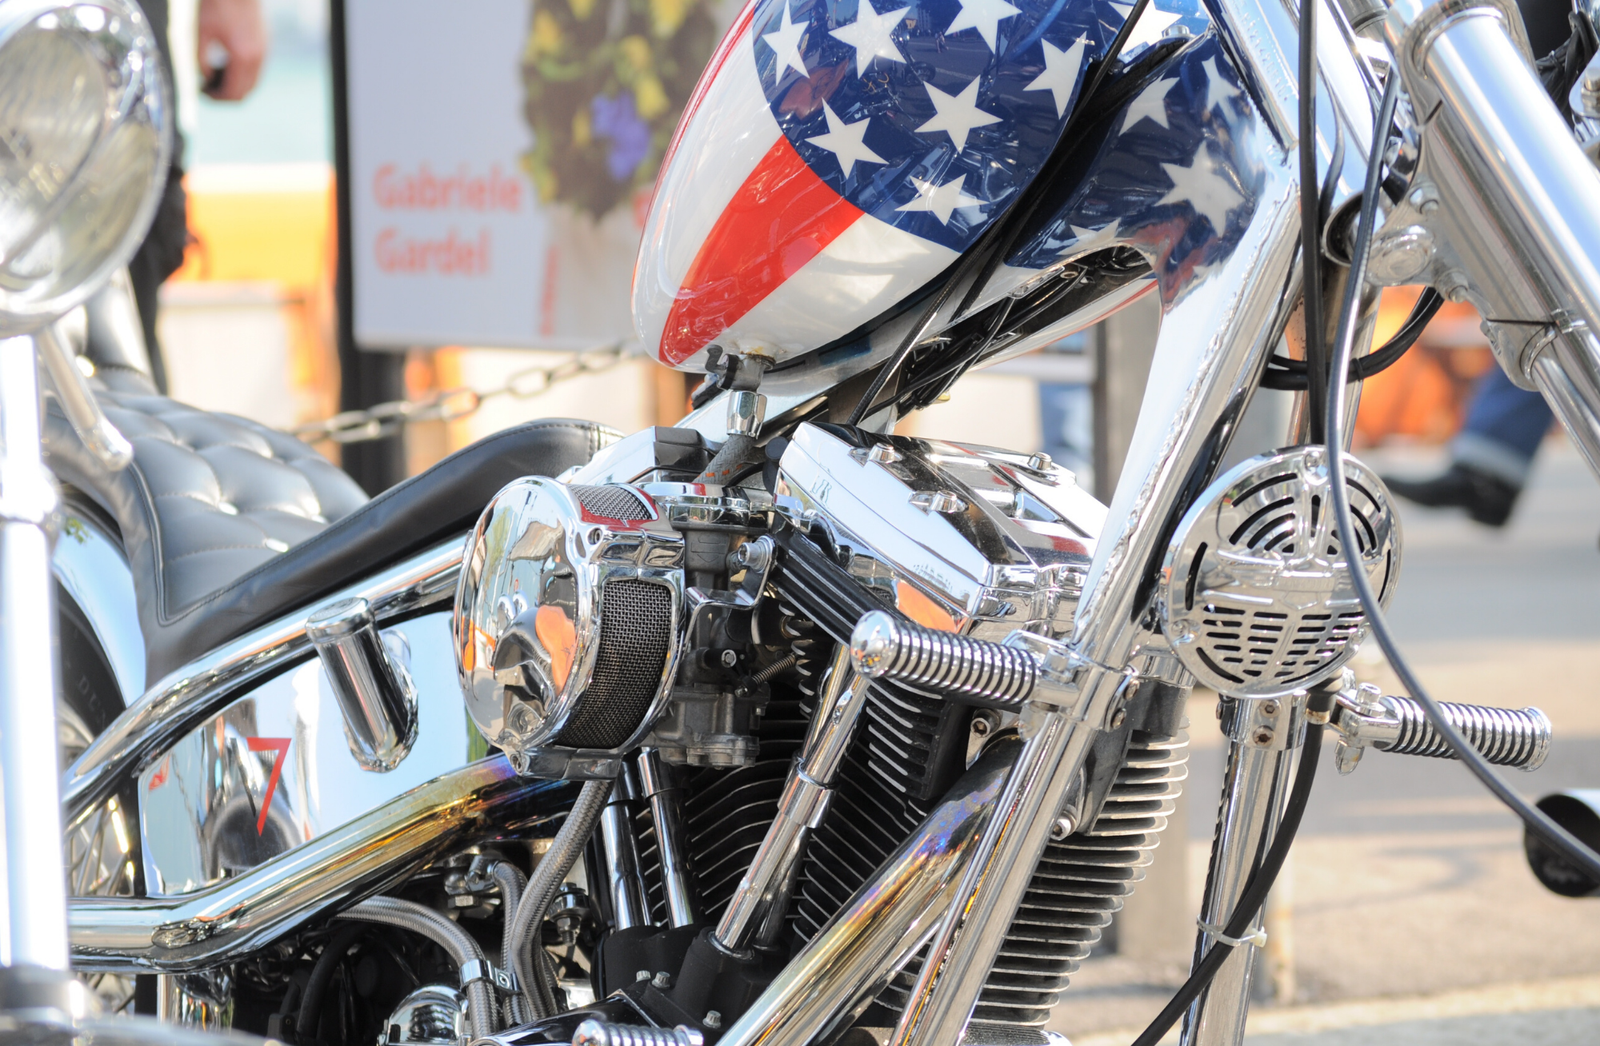 Operation Troop Appreciation 4th Annual Motorcycle Run image